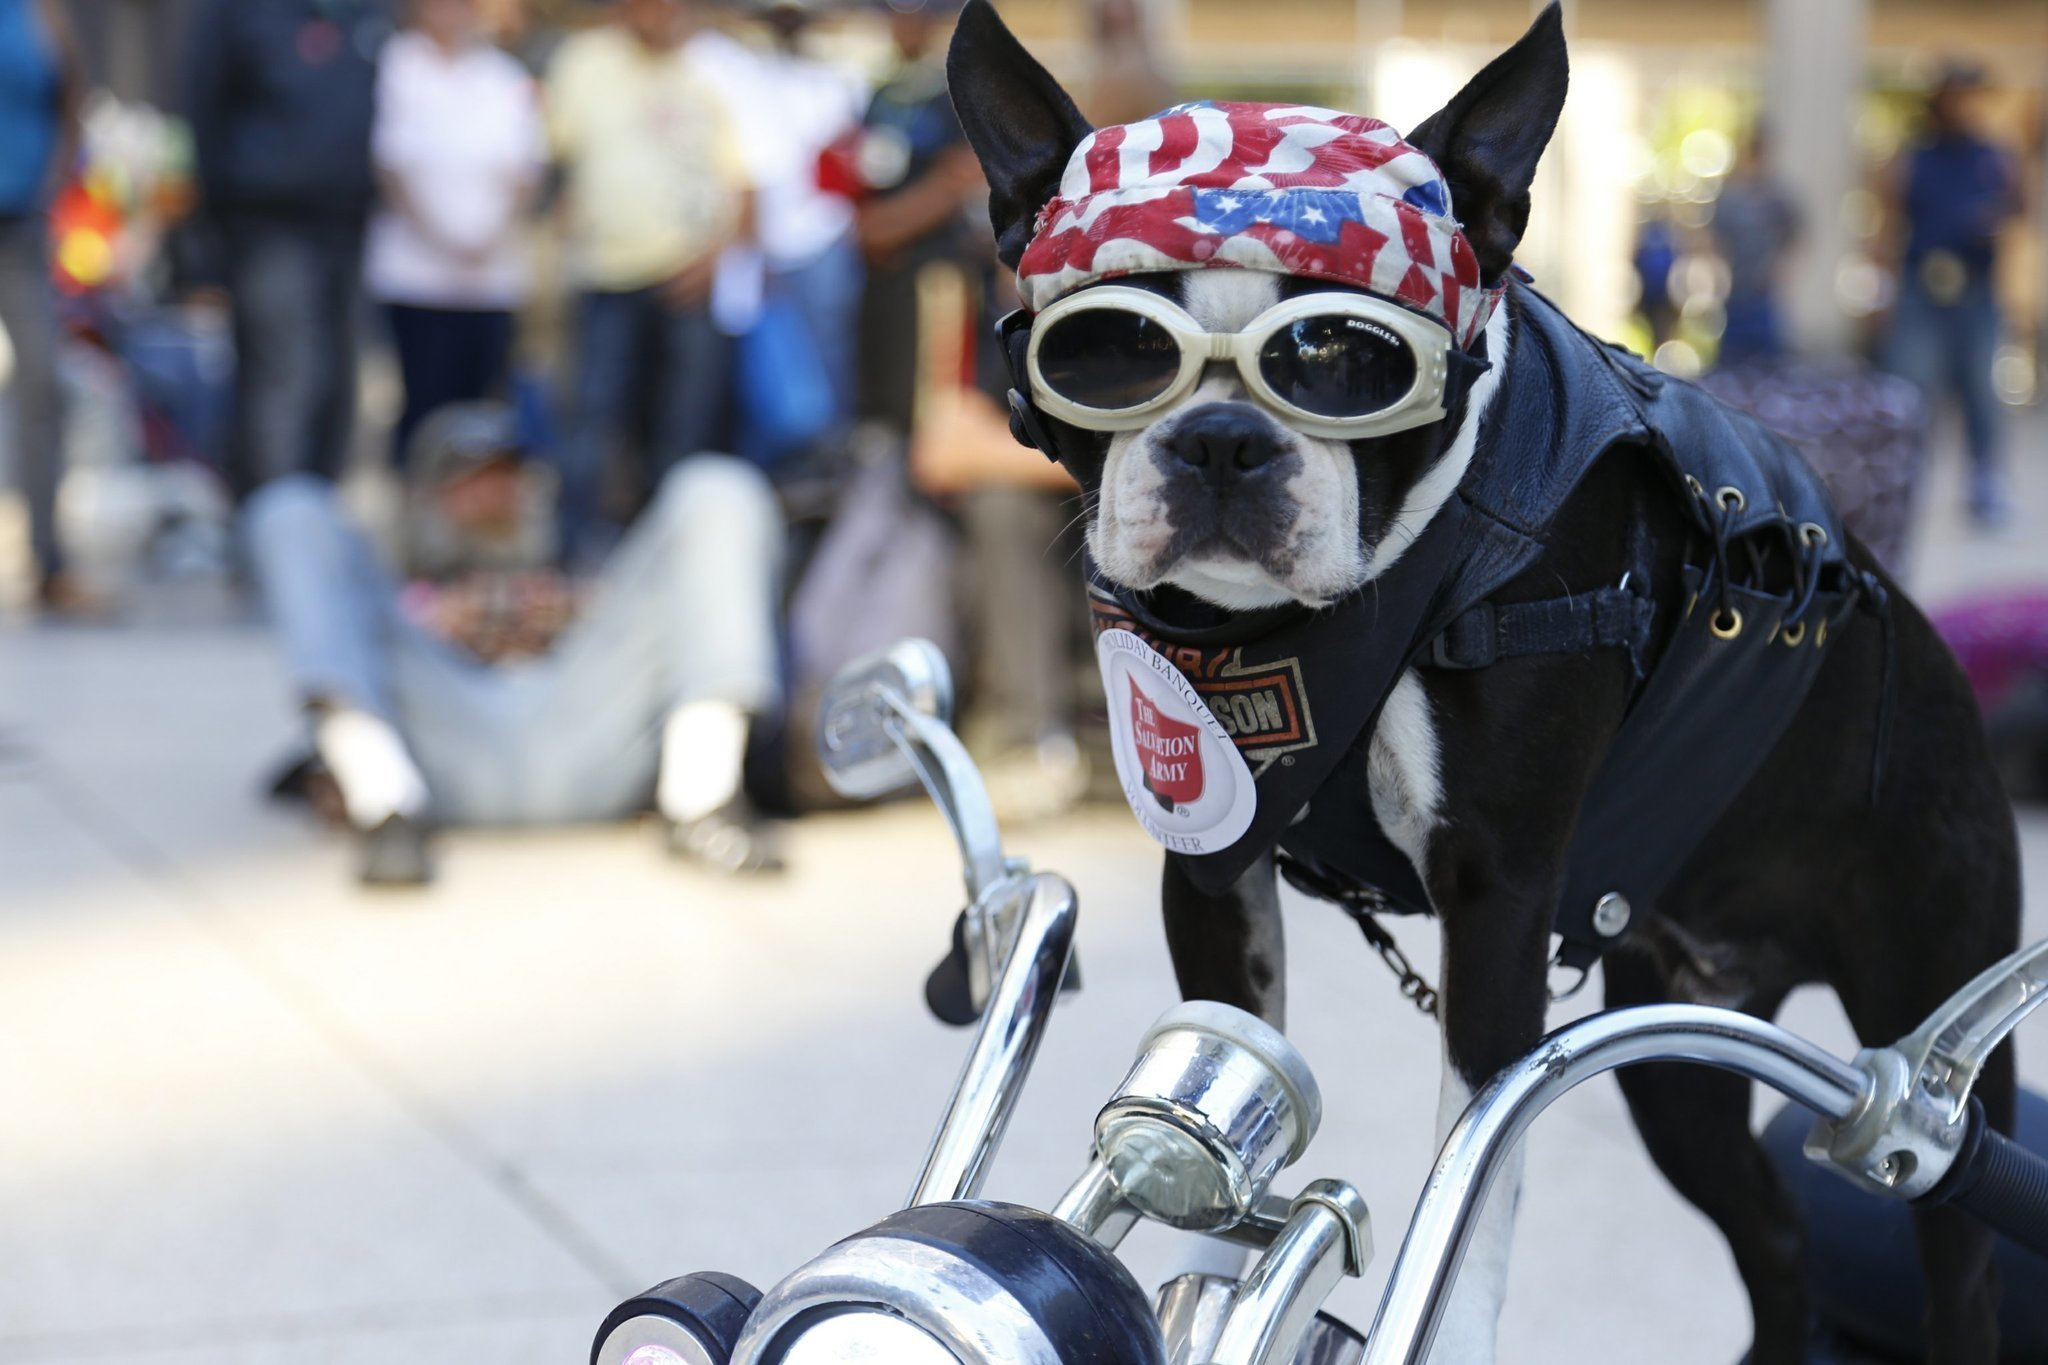 Chopper the biker dog loses therapy certification over costume chopper the biker dog loses therapy certification over costume the san diego union tribune xflitez Images